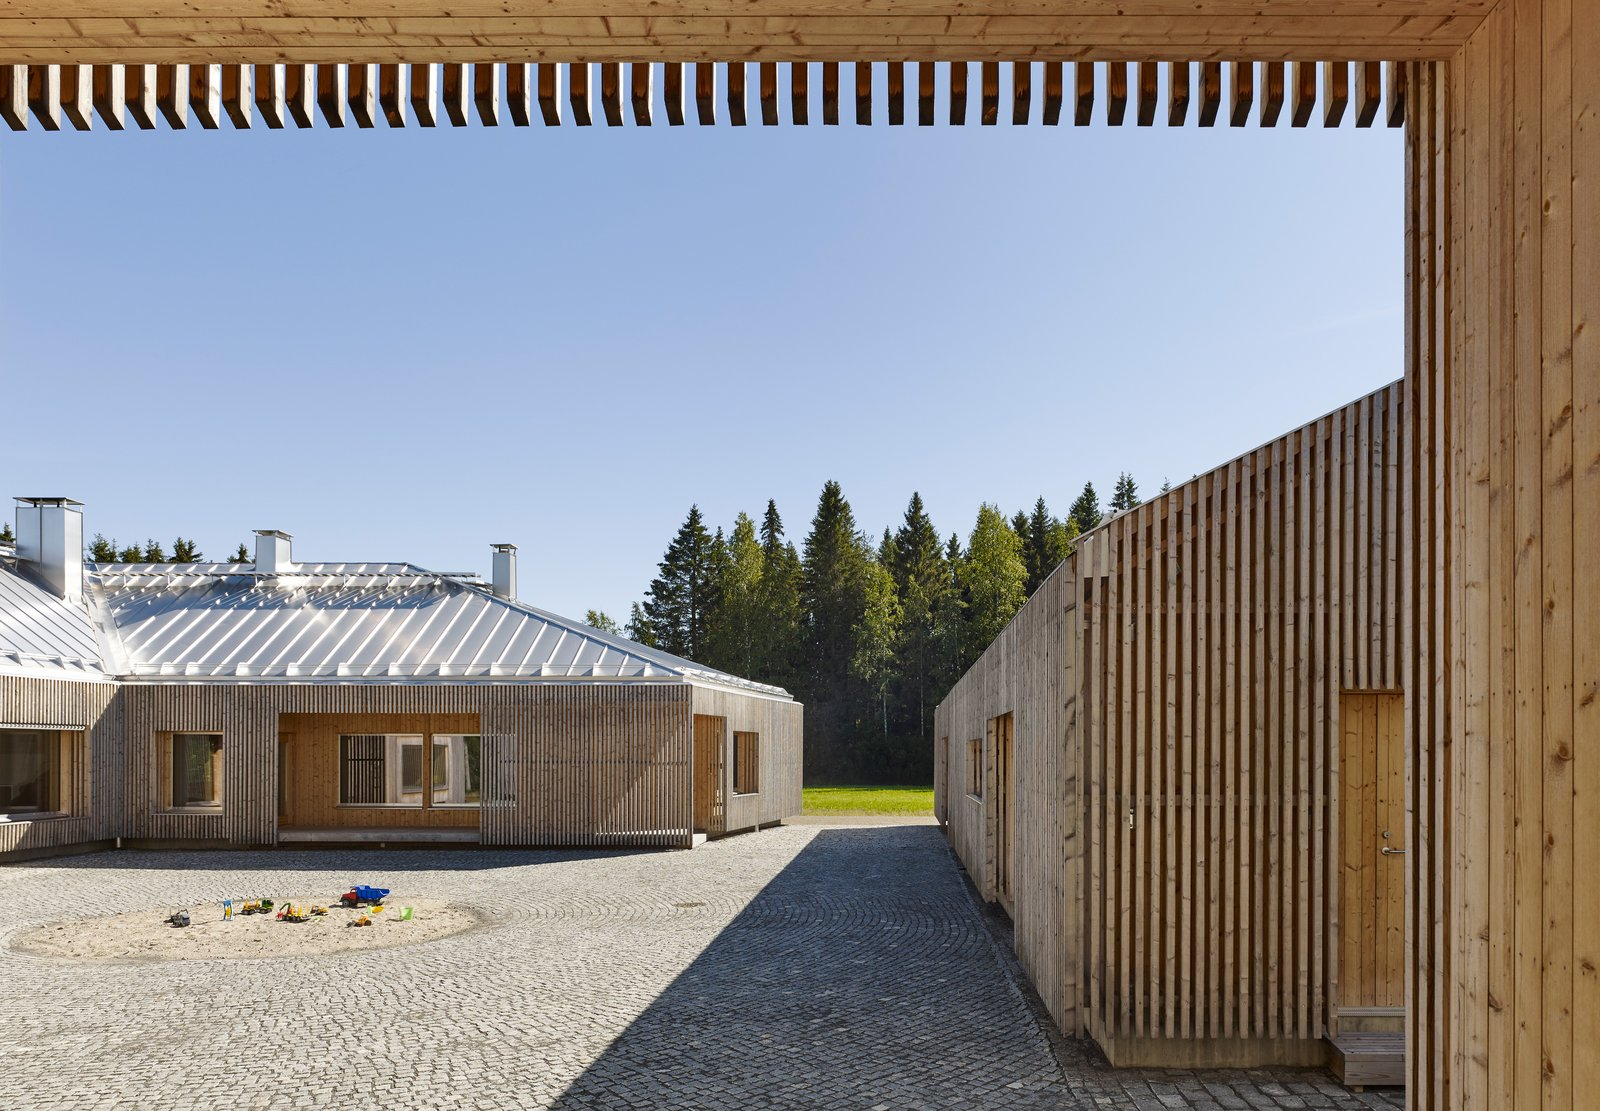 """Architect Anssi Lassila de-signed House Riihi to run on Control Intelligence's Talomat system, which enables the build-ings to be powered by battery. """"Often, we don't know that there has been a power outage,"""" says resident Petri Mäkelä, """"since the lights haven't even flickered."""" By designing the automation system and the house simultaneously, Lassila had maximum control over its integration. Tagged: Exterior, House, and Wood Siding Material.  Photo 2 of 8 in This Battery-Powered House Never Runs Out of Juice"""